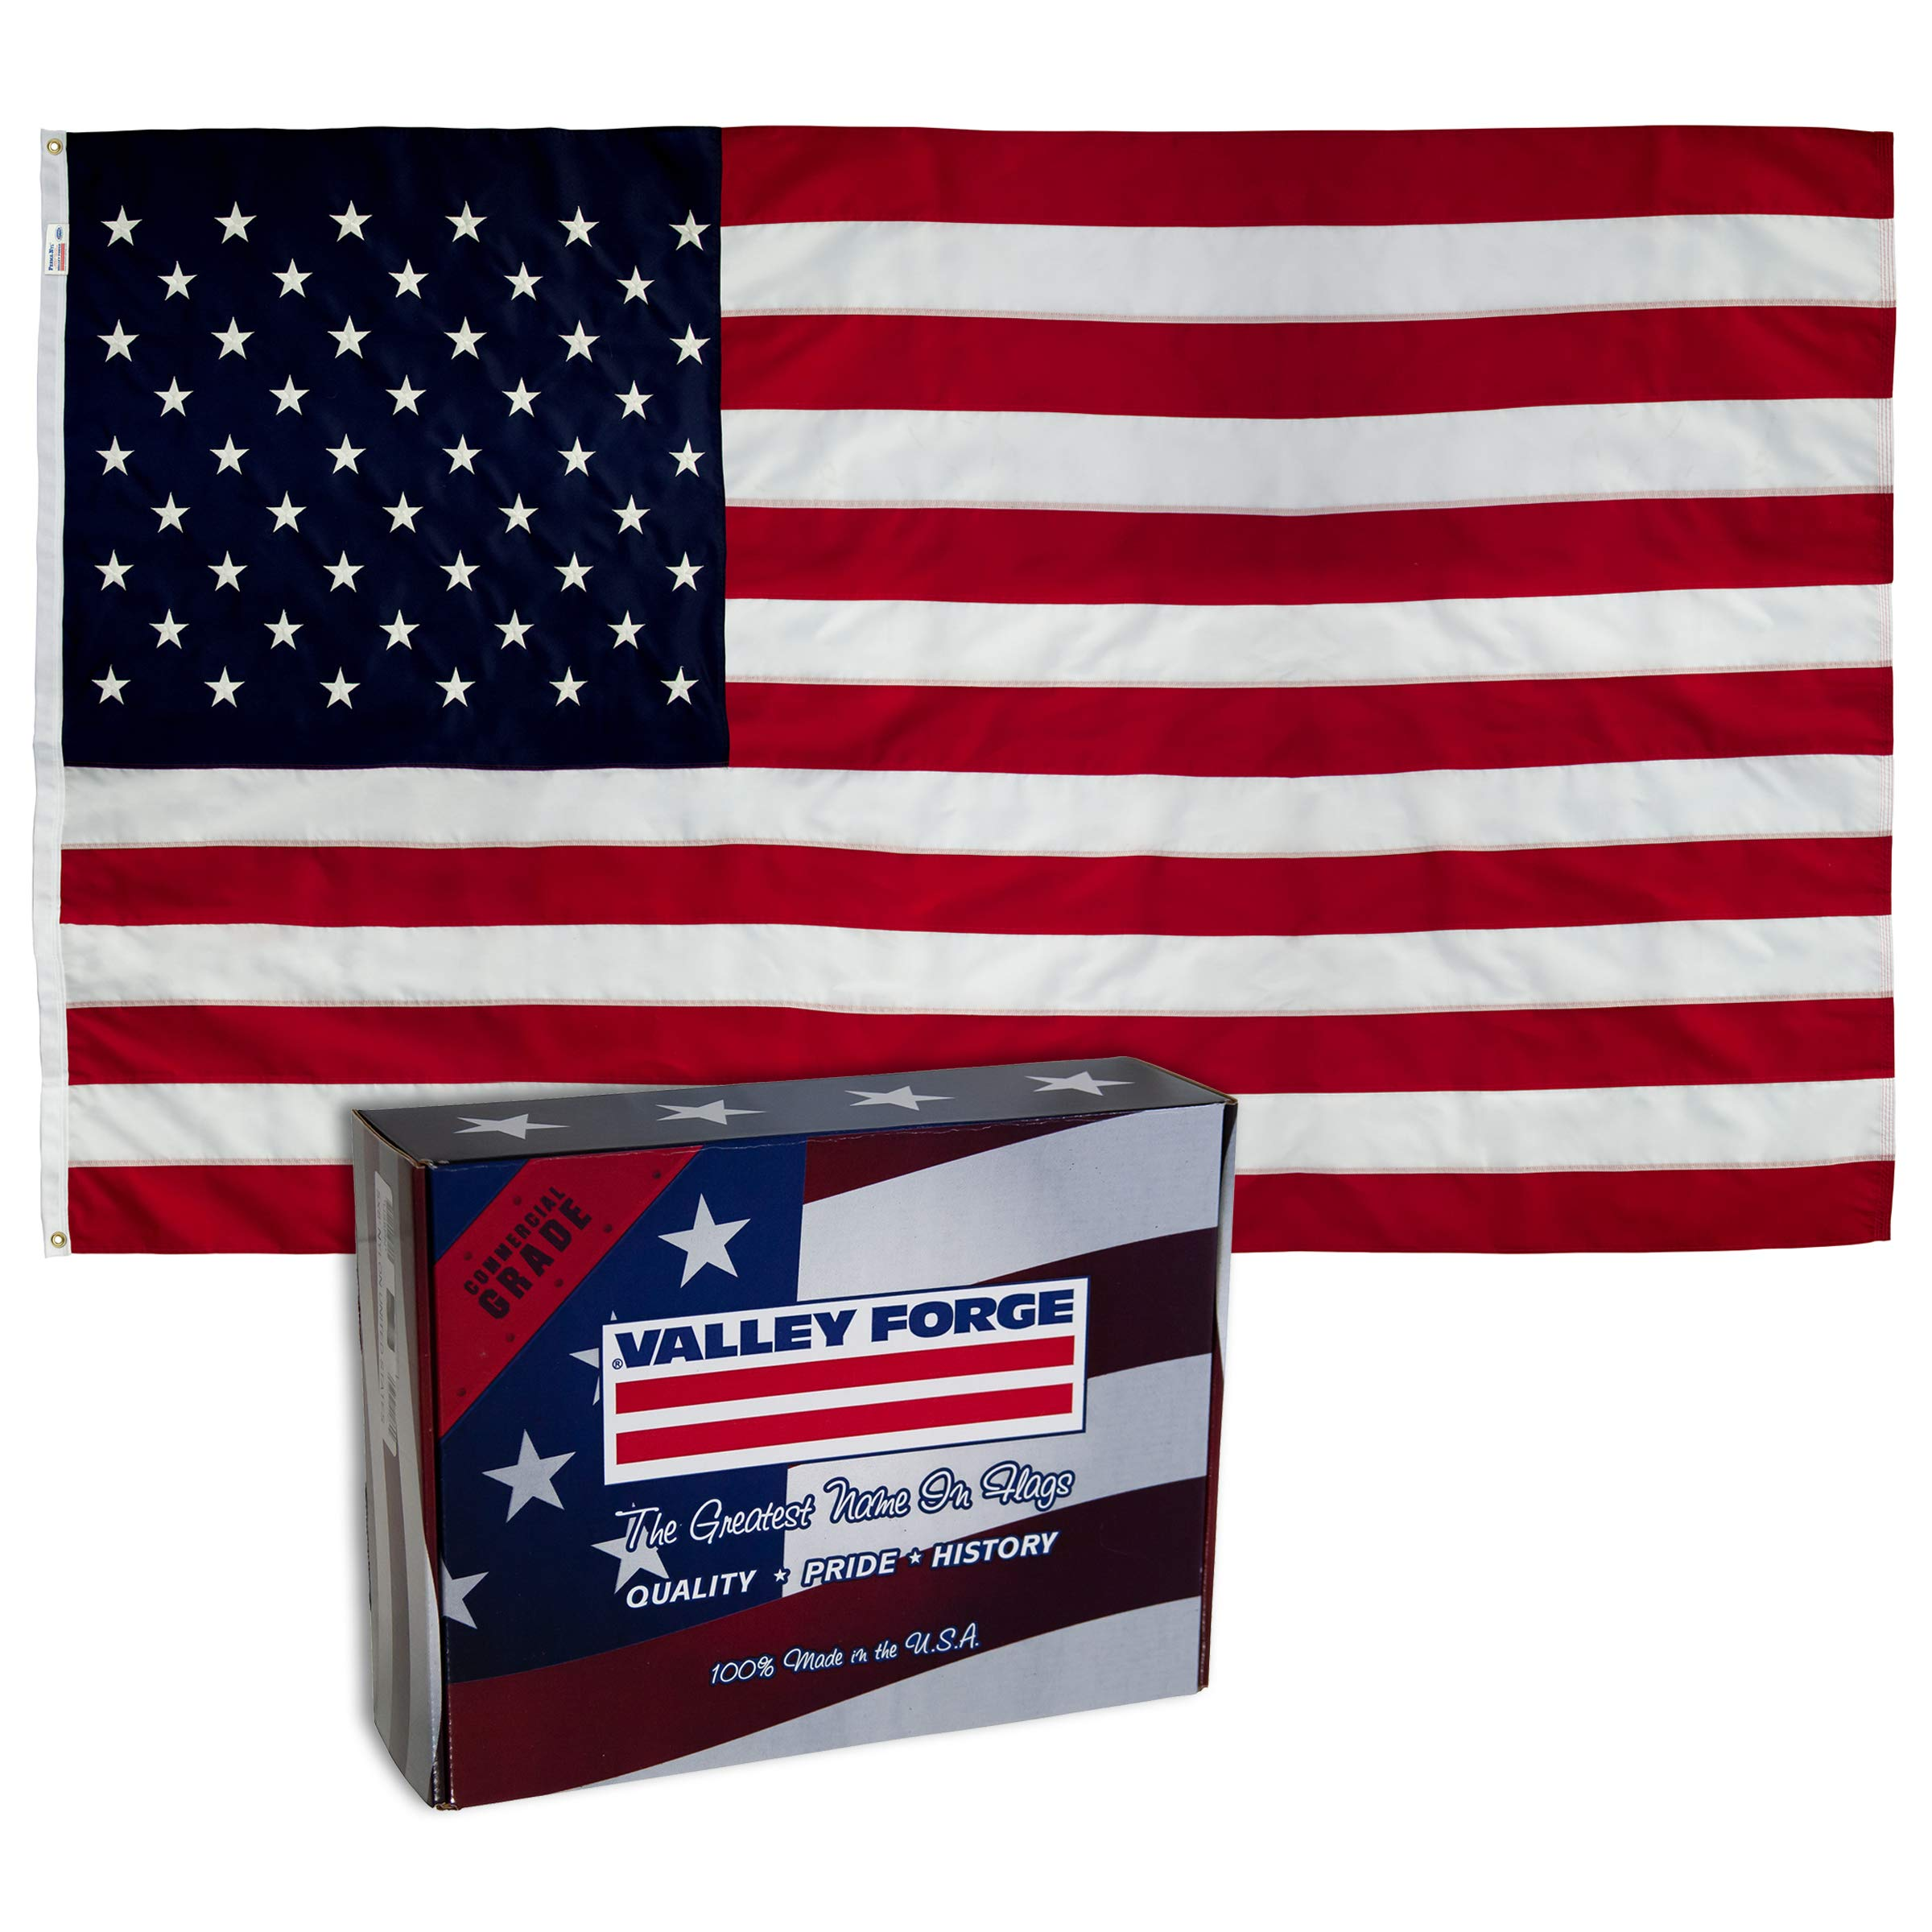 Valley Forge, American Flag, Nylon PERMA-NYL, 3'x5', 100% Made in USA, Heavy-Duty Brass Grommets, Sewn Stripes and Embroidered Stars